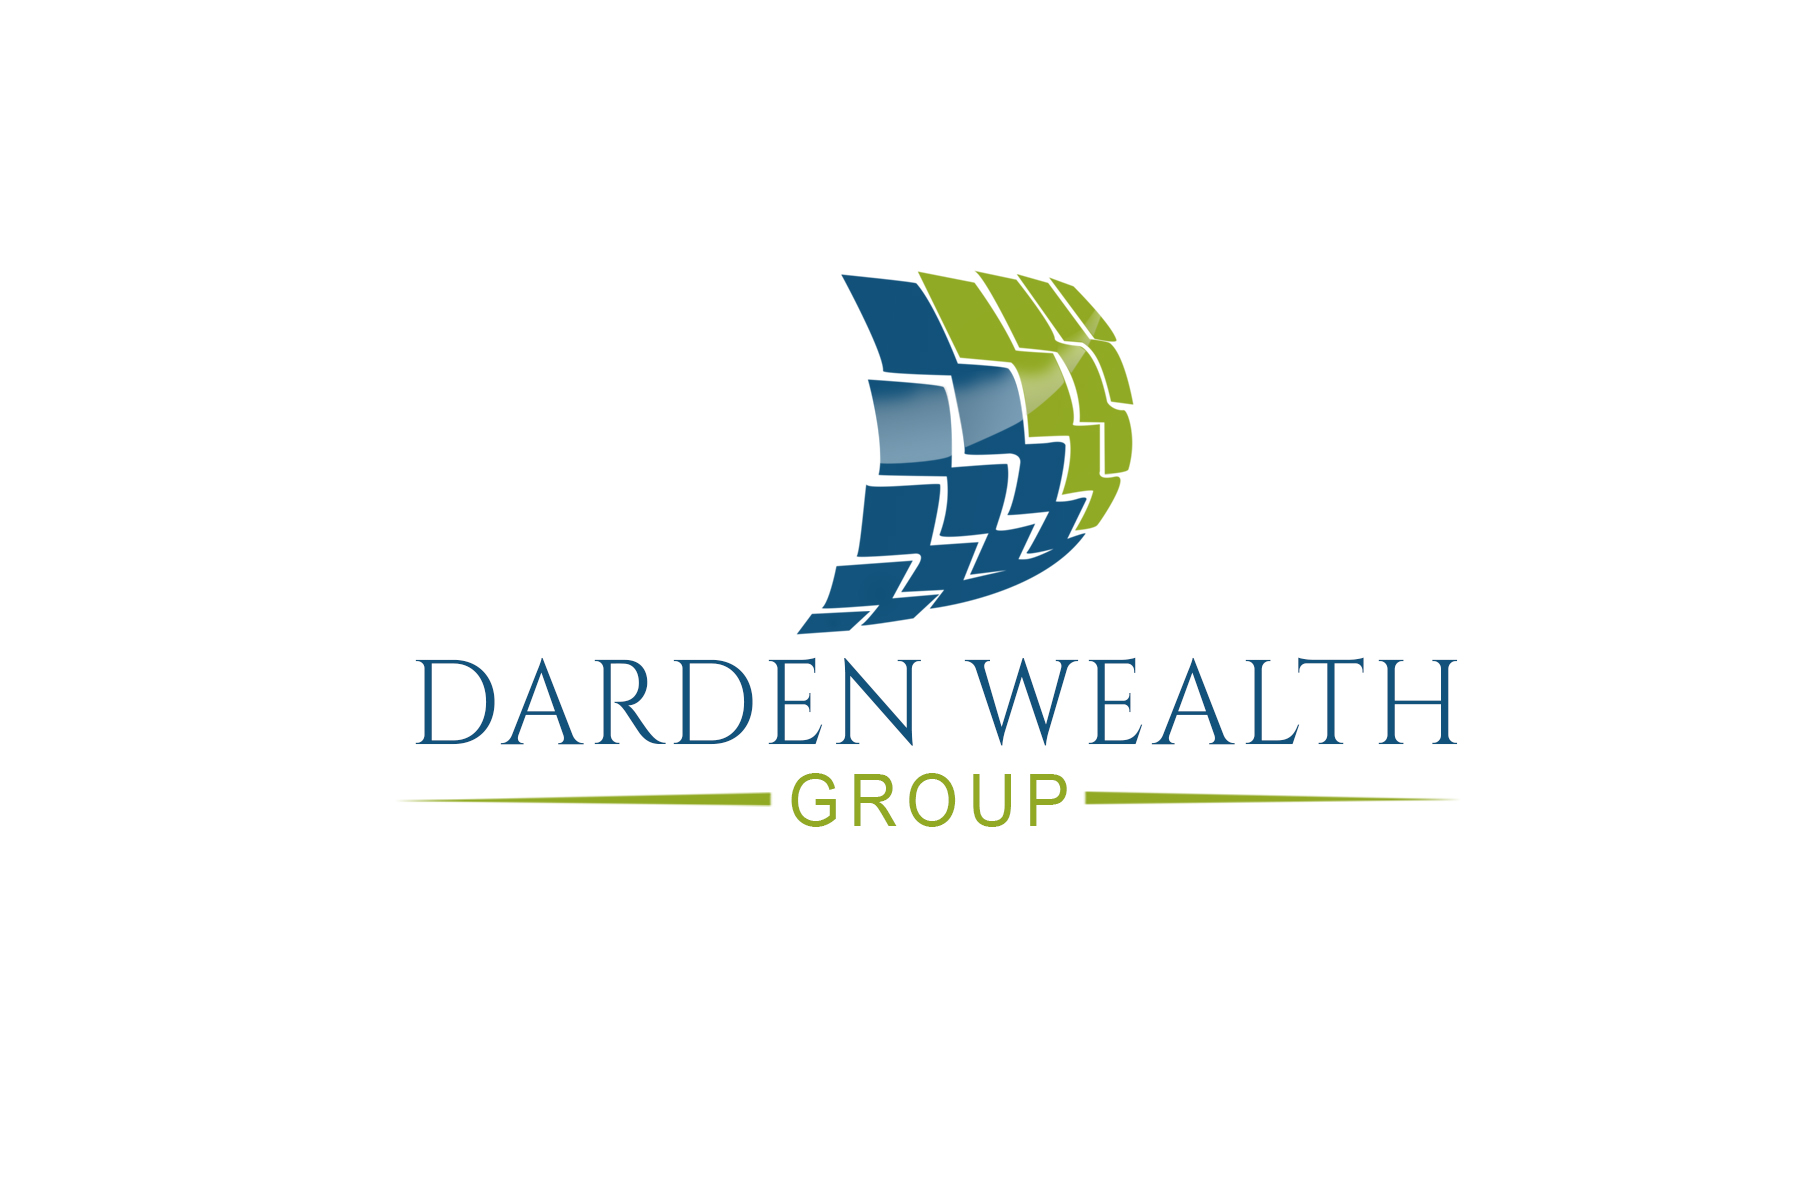 darden capital management 9 reviews of darden property management darden property management has been managing several units for me since early 2012 it is nice to find a company who can handle all aspects of property management seamlessly.